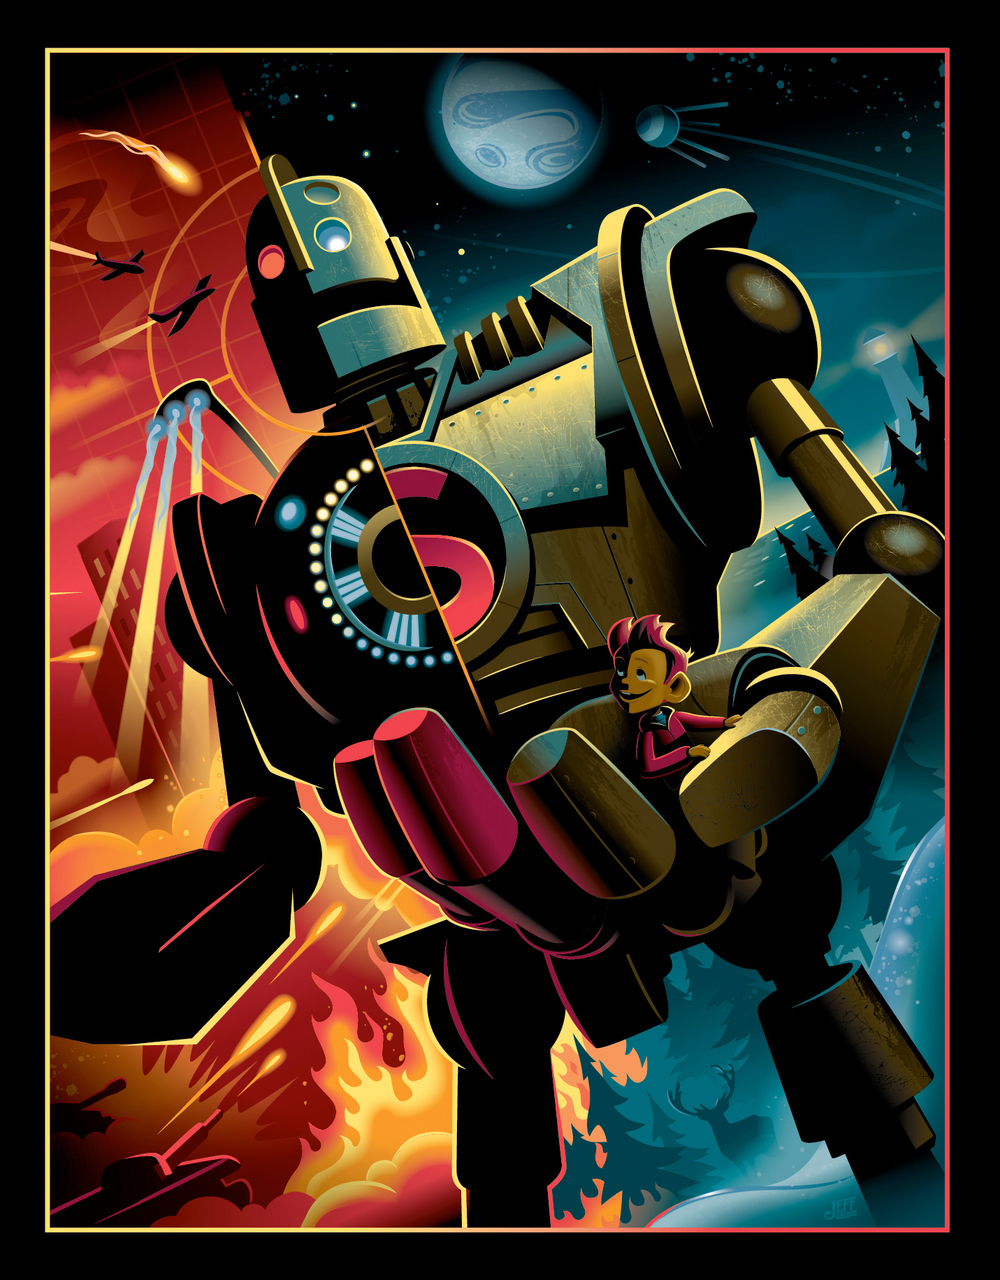 poster-art-for-the-iron-giant-created-by-brad-bird-and-jeff-granito1